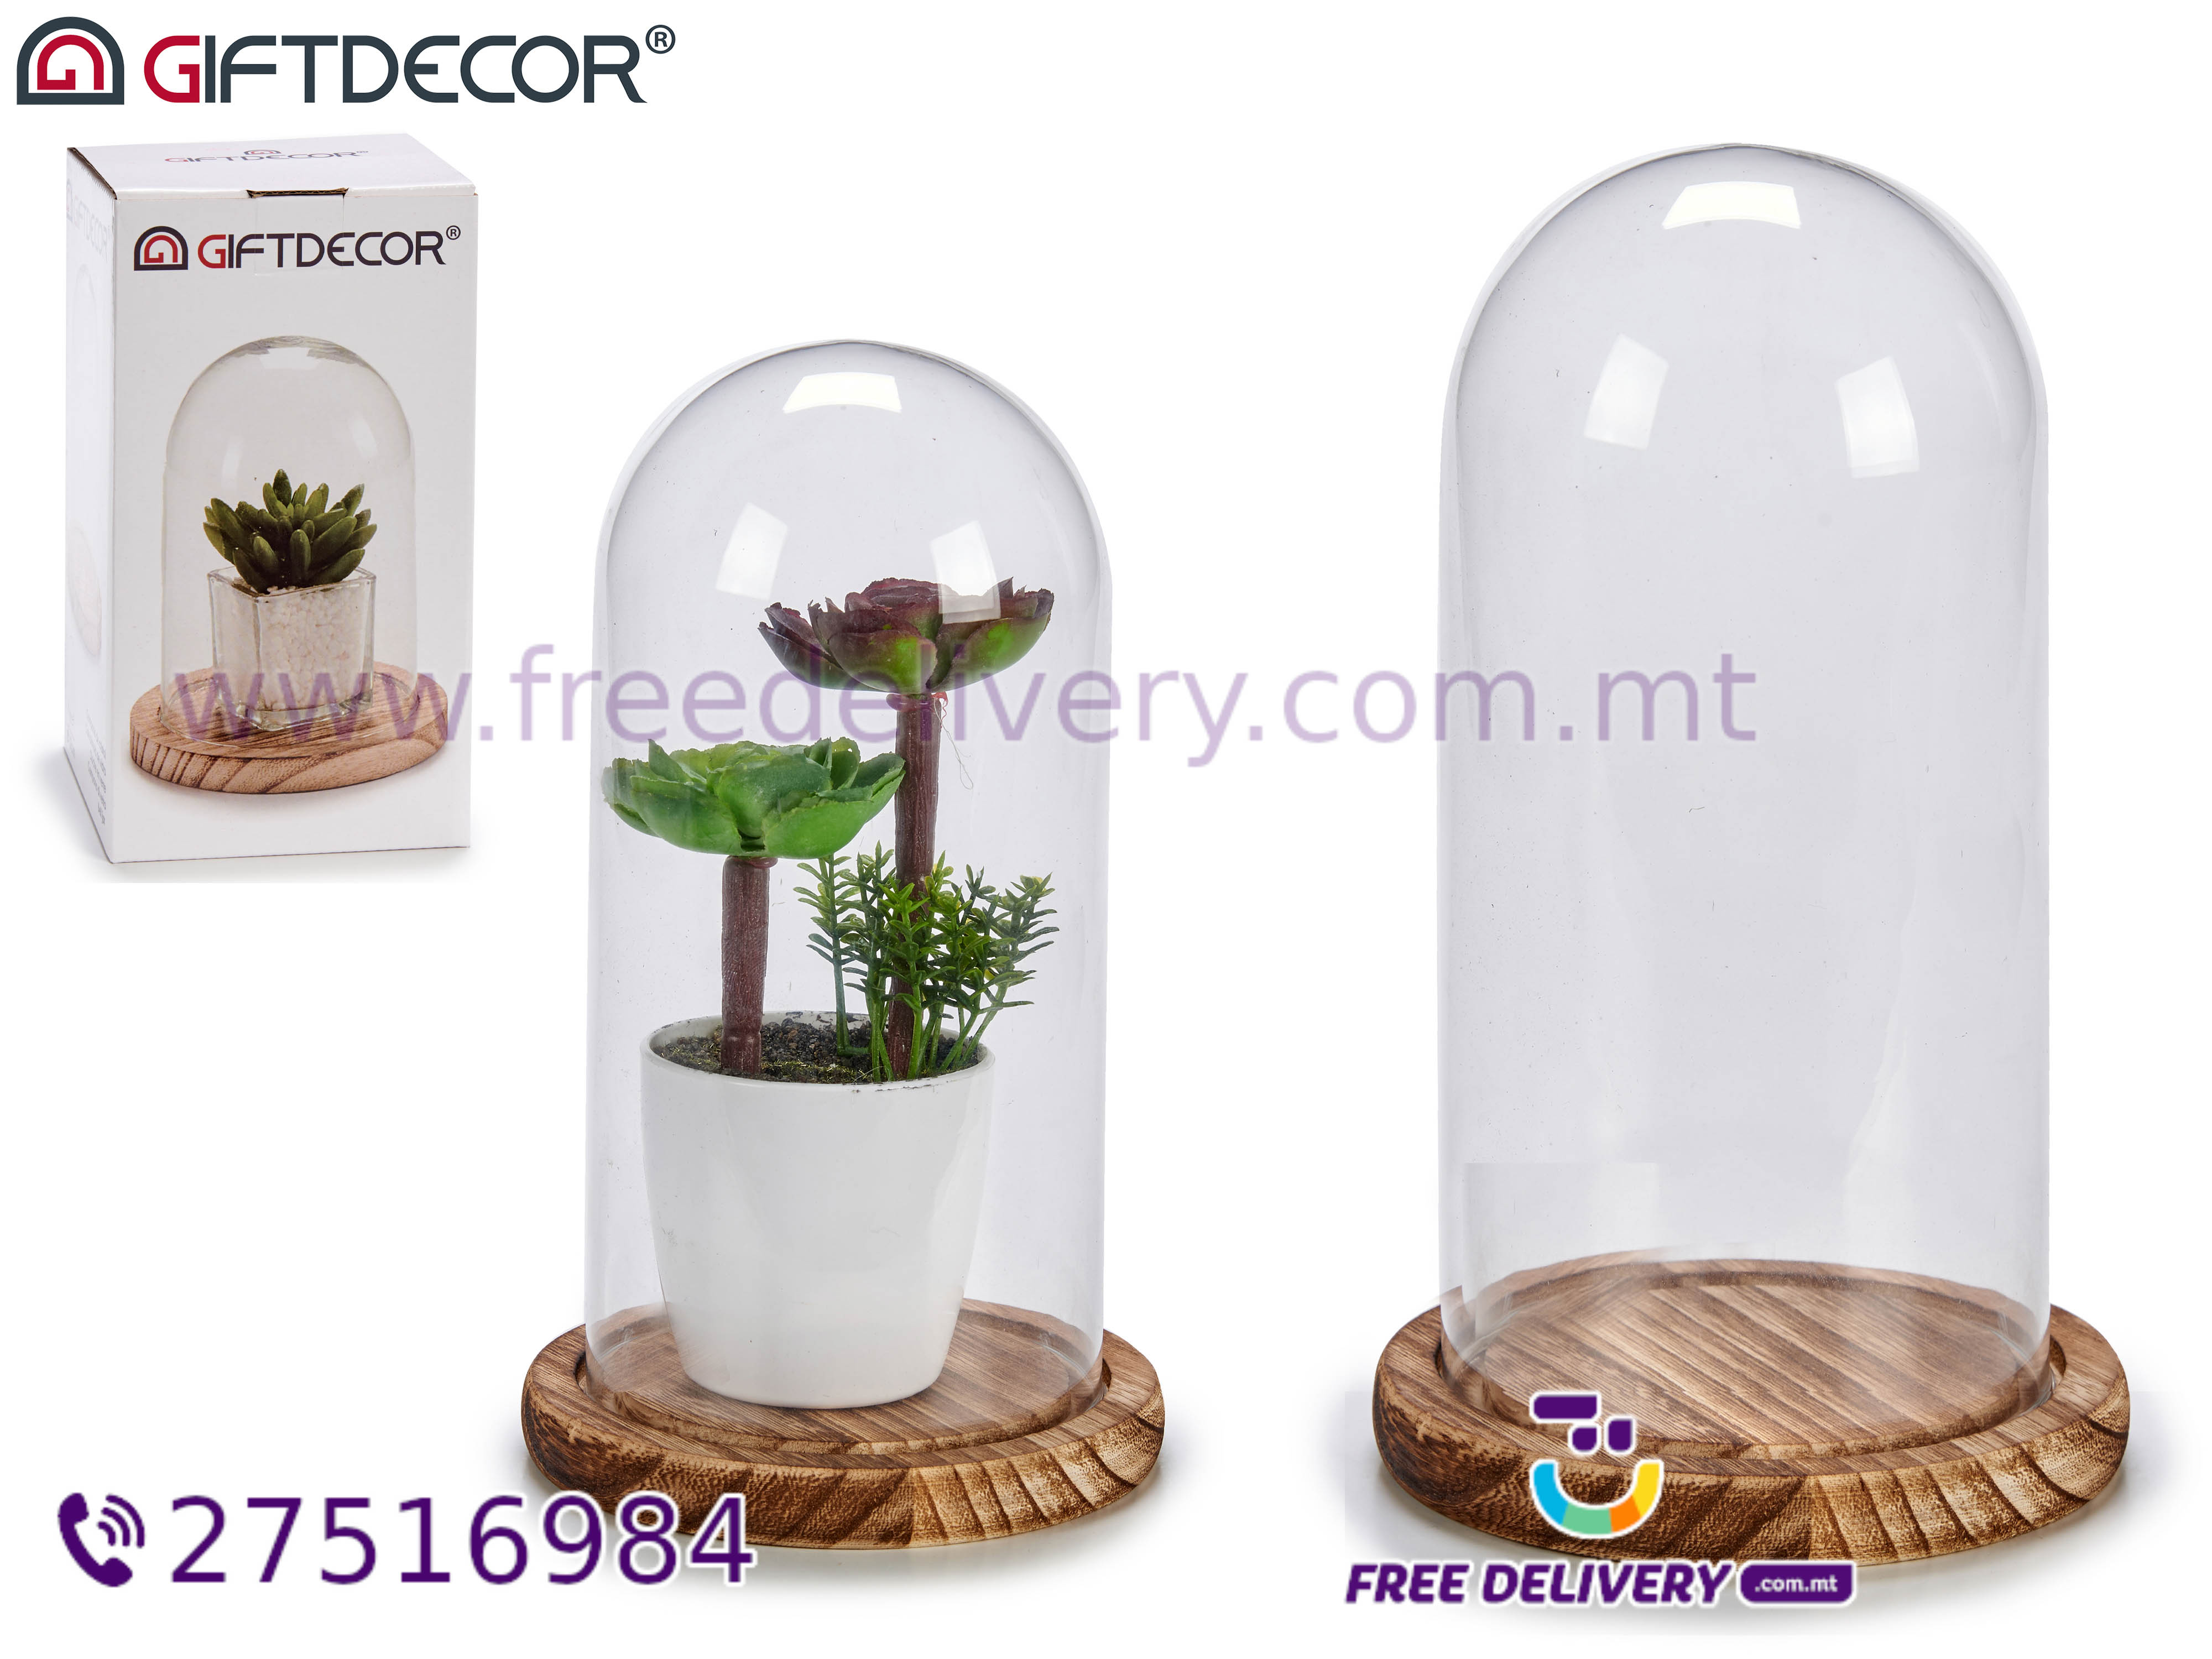 MEDIUM GLASS DOME 1220 WITH NARROW WOODEN BASE AR565112